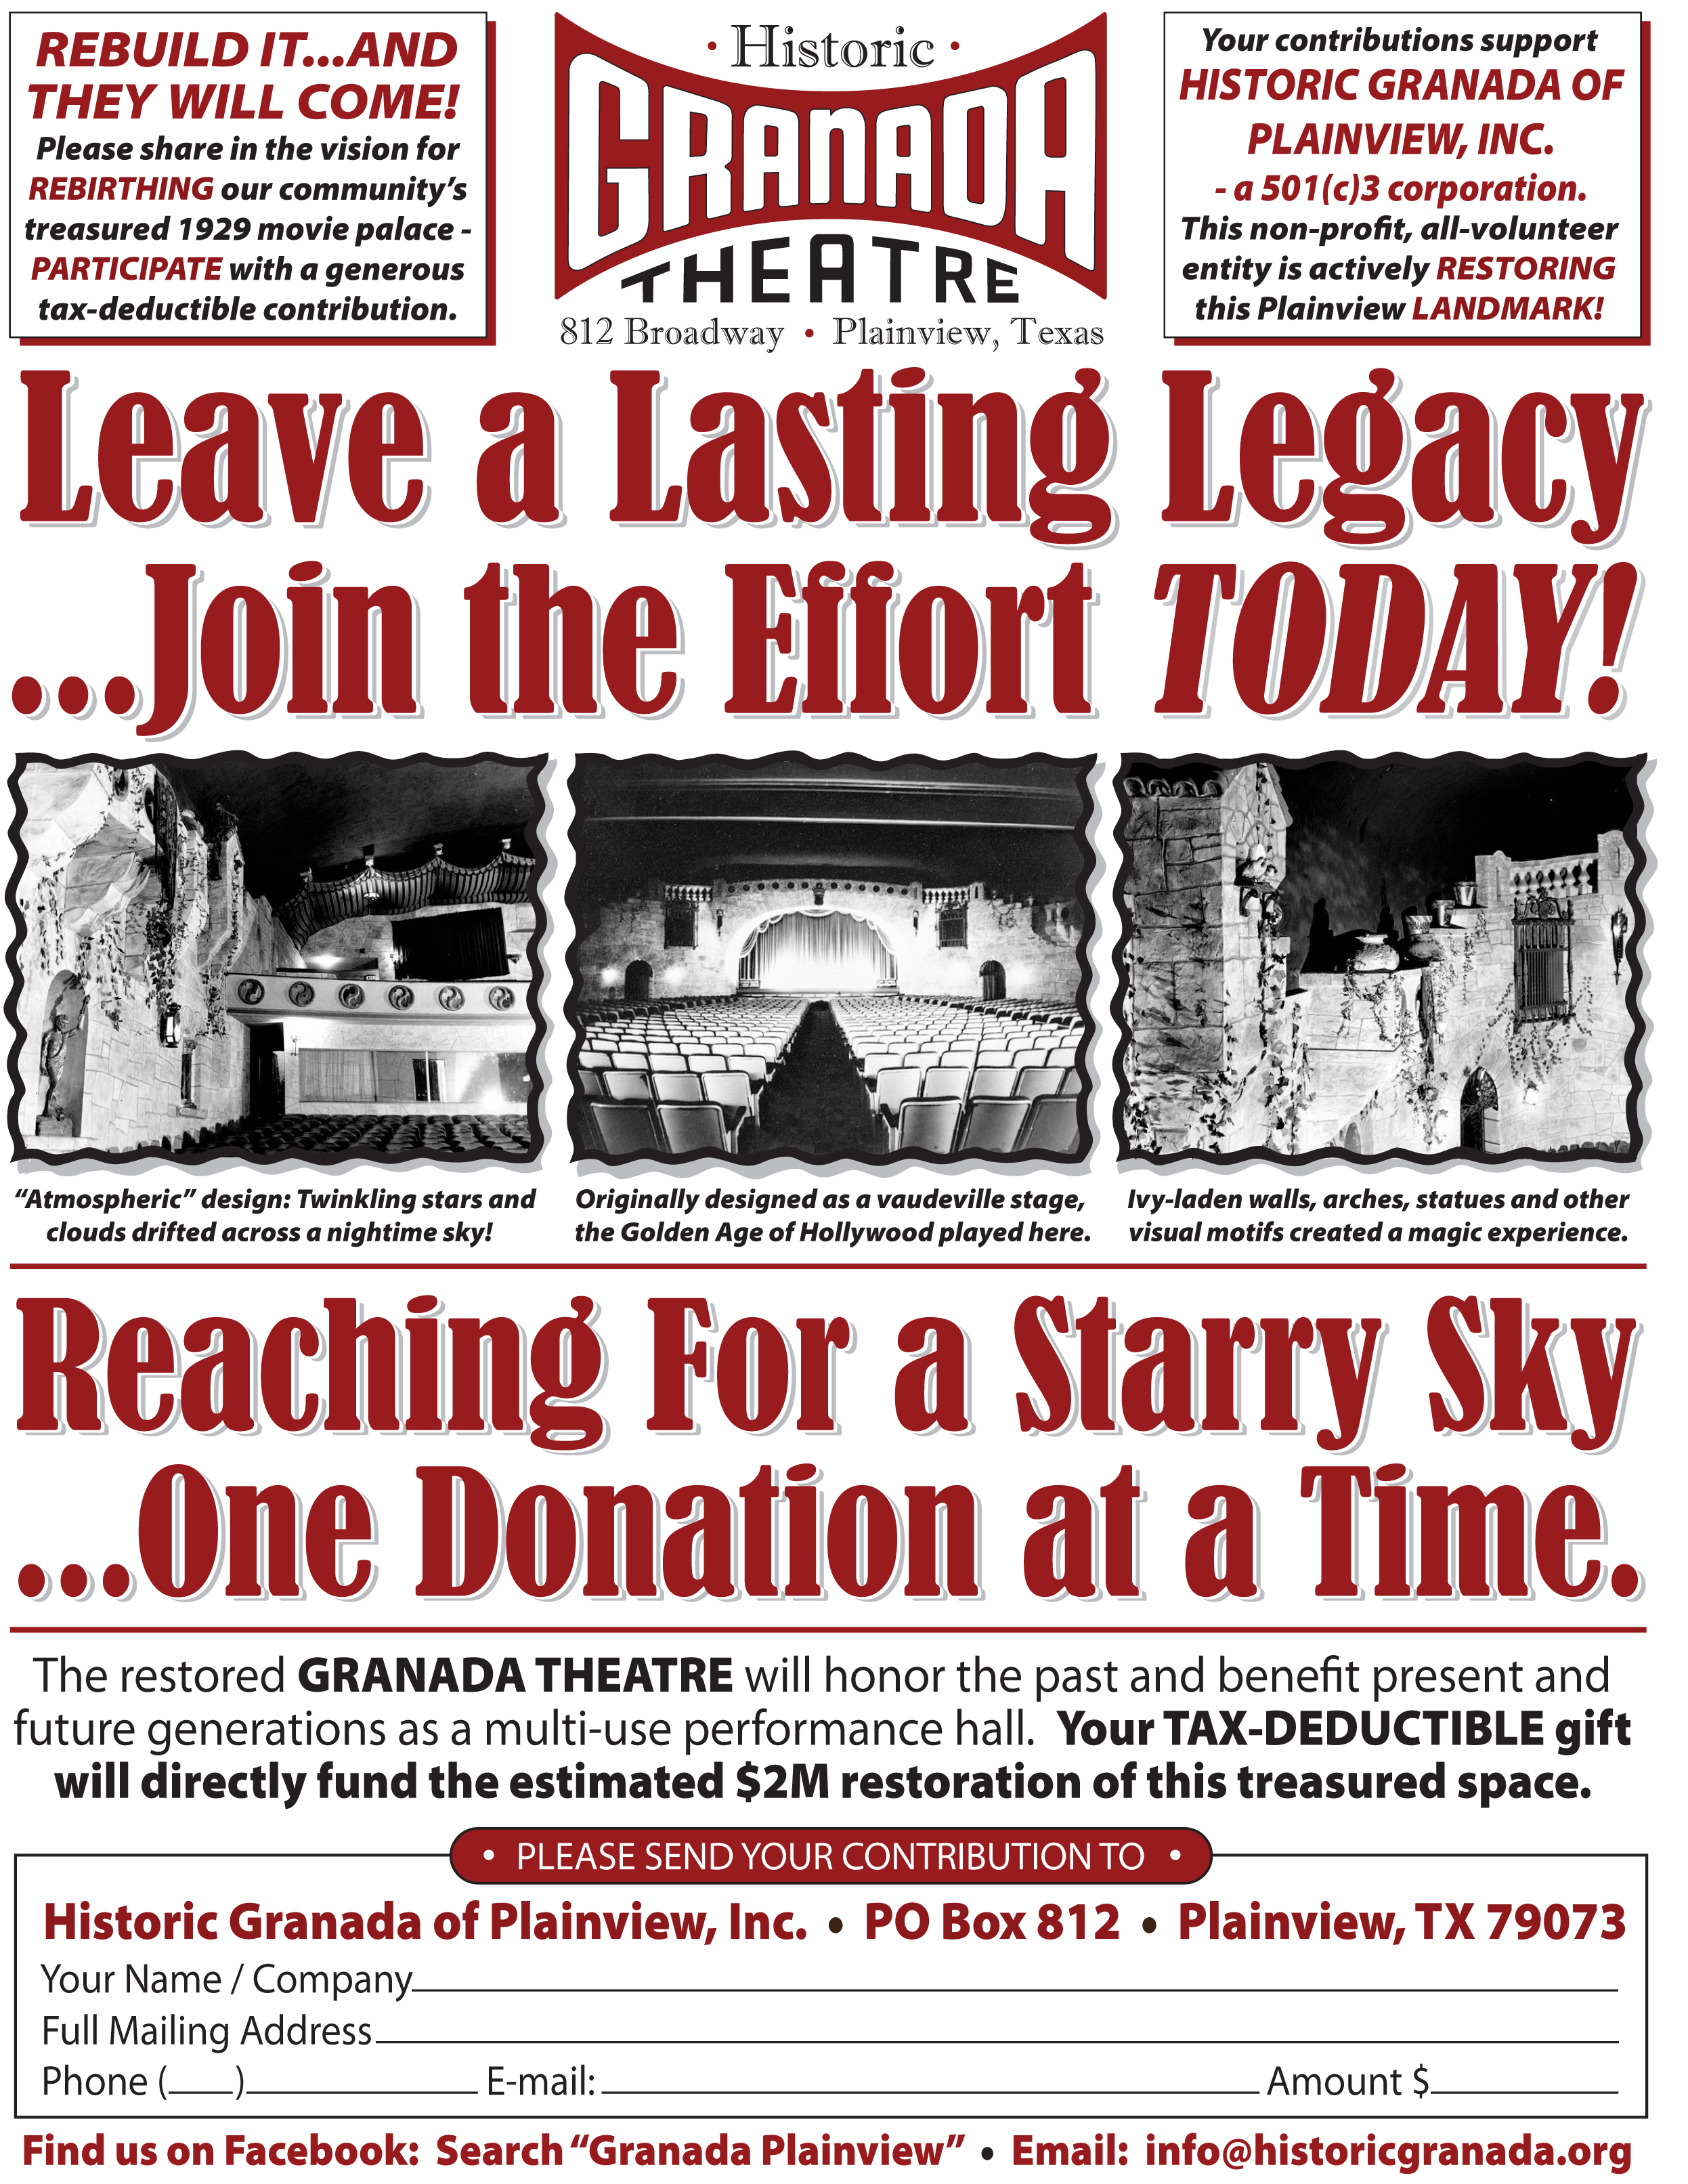 Historic Granada Theater Starry Sky Fundraising